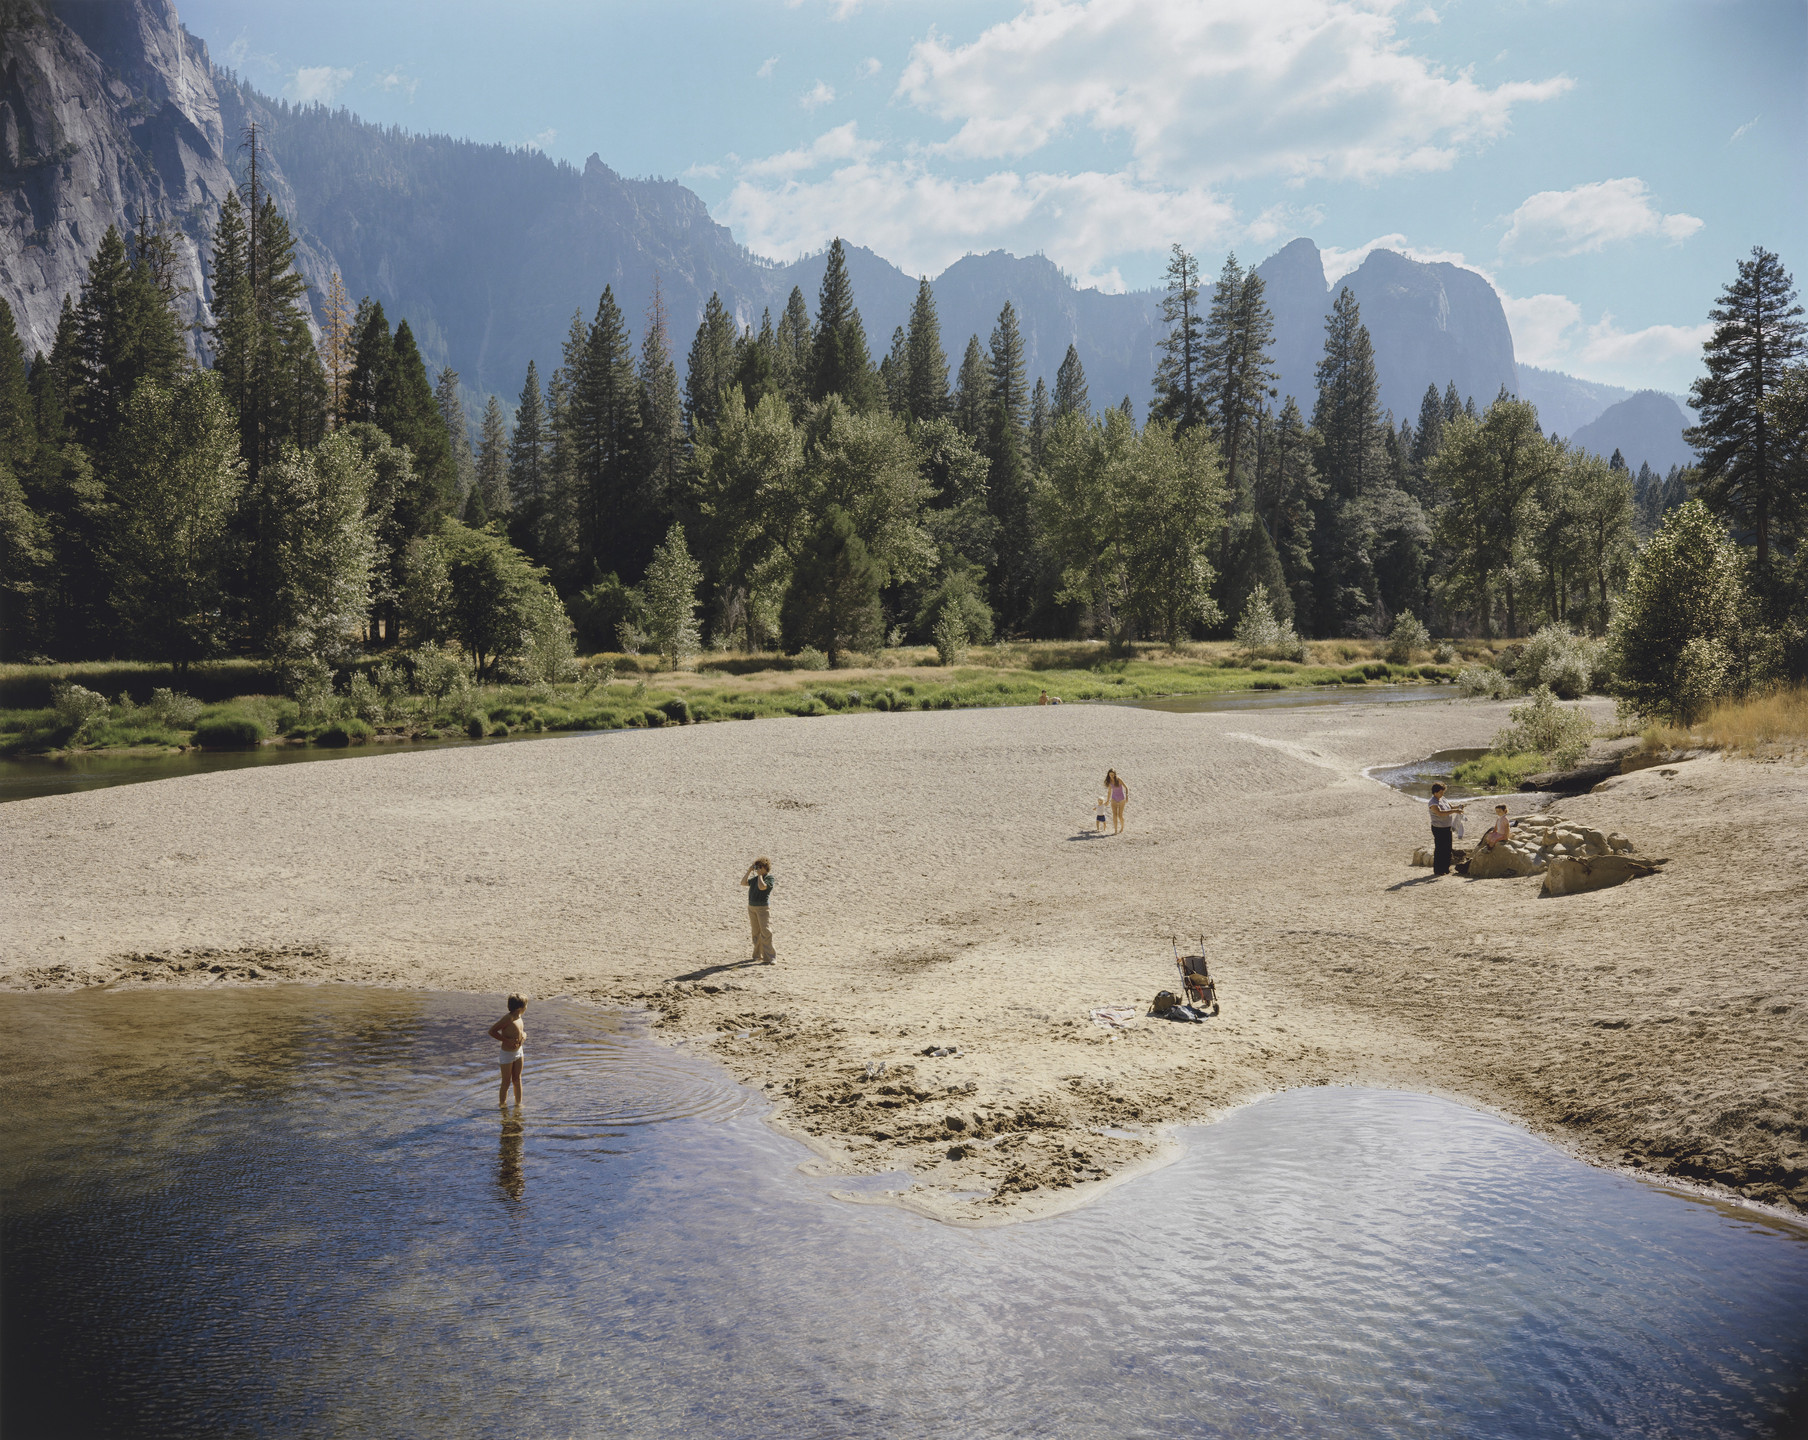 Stephen Shore. Merced River, Yosemite National Park, California, August 13, 1979. 1979